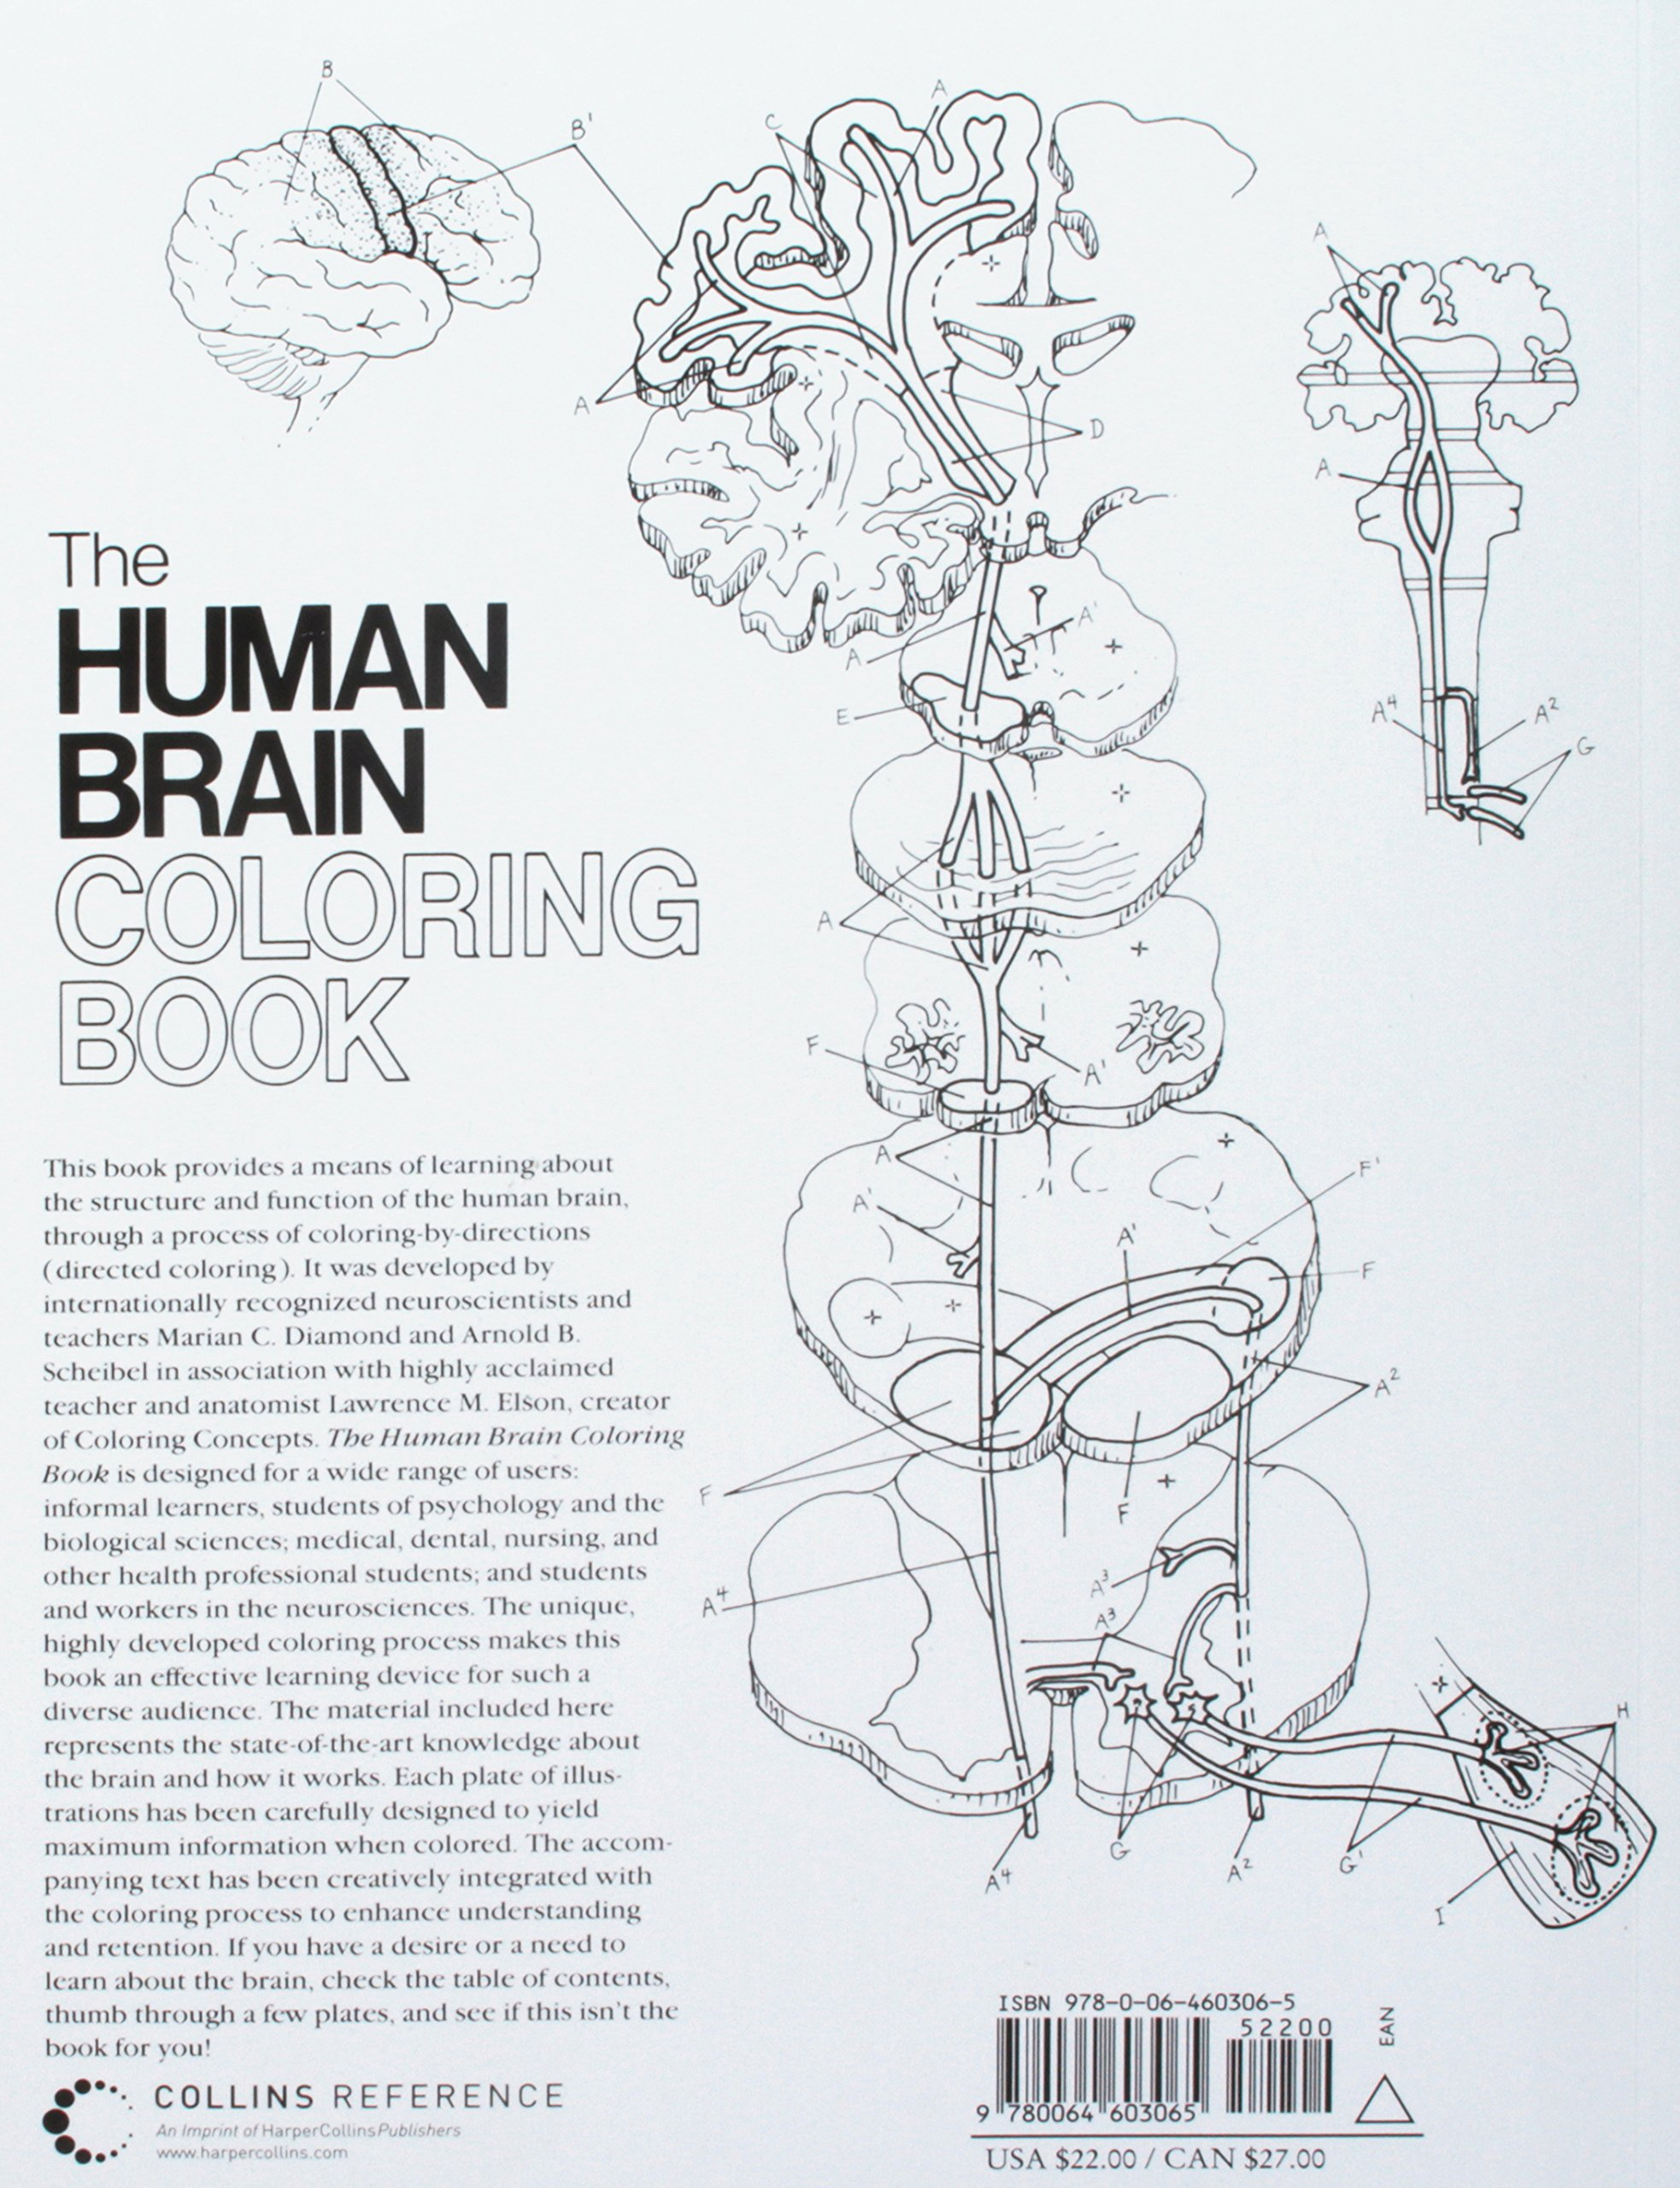 The Human Brain Coloring Book Coloring Concepts Amazon Co Uk Diamond Marian C Scheibel Arnold B Books